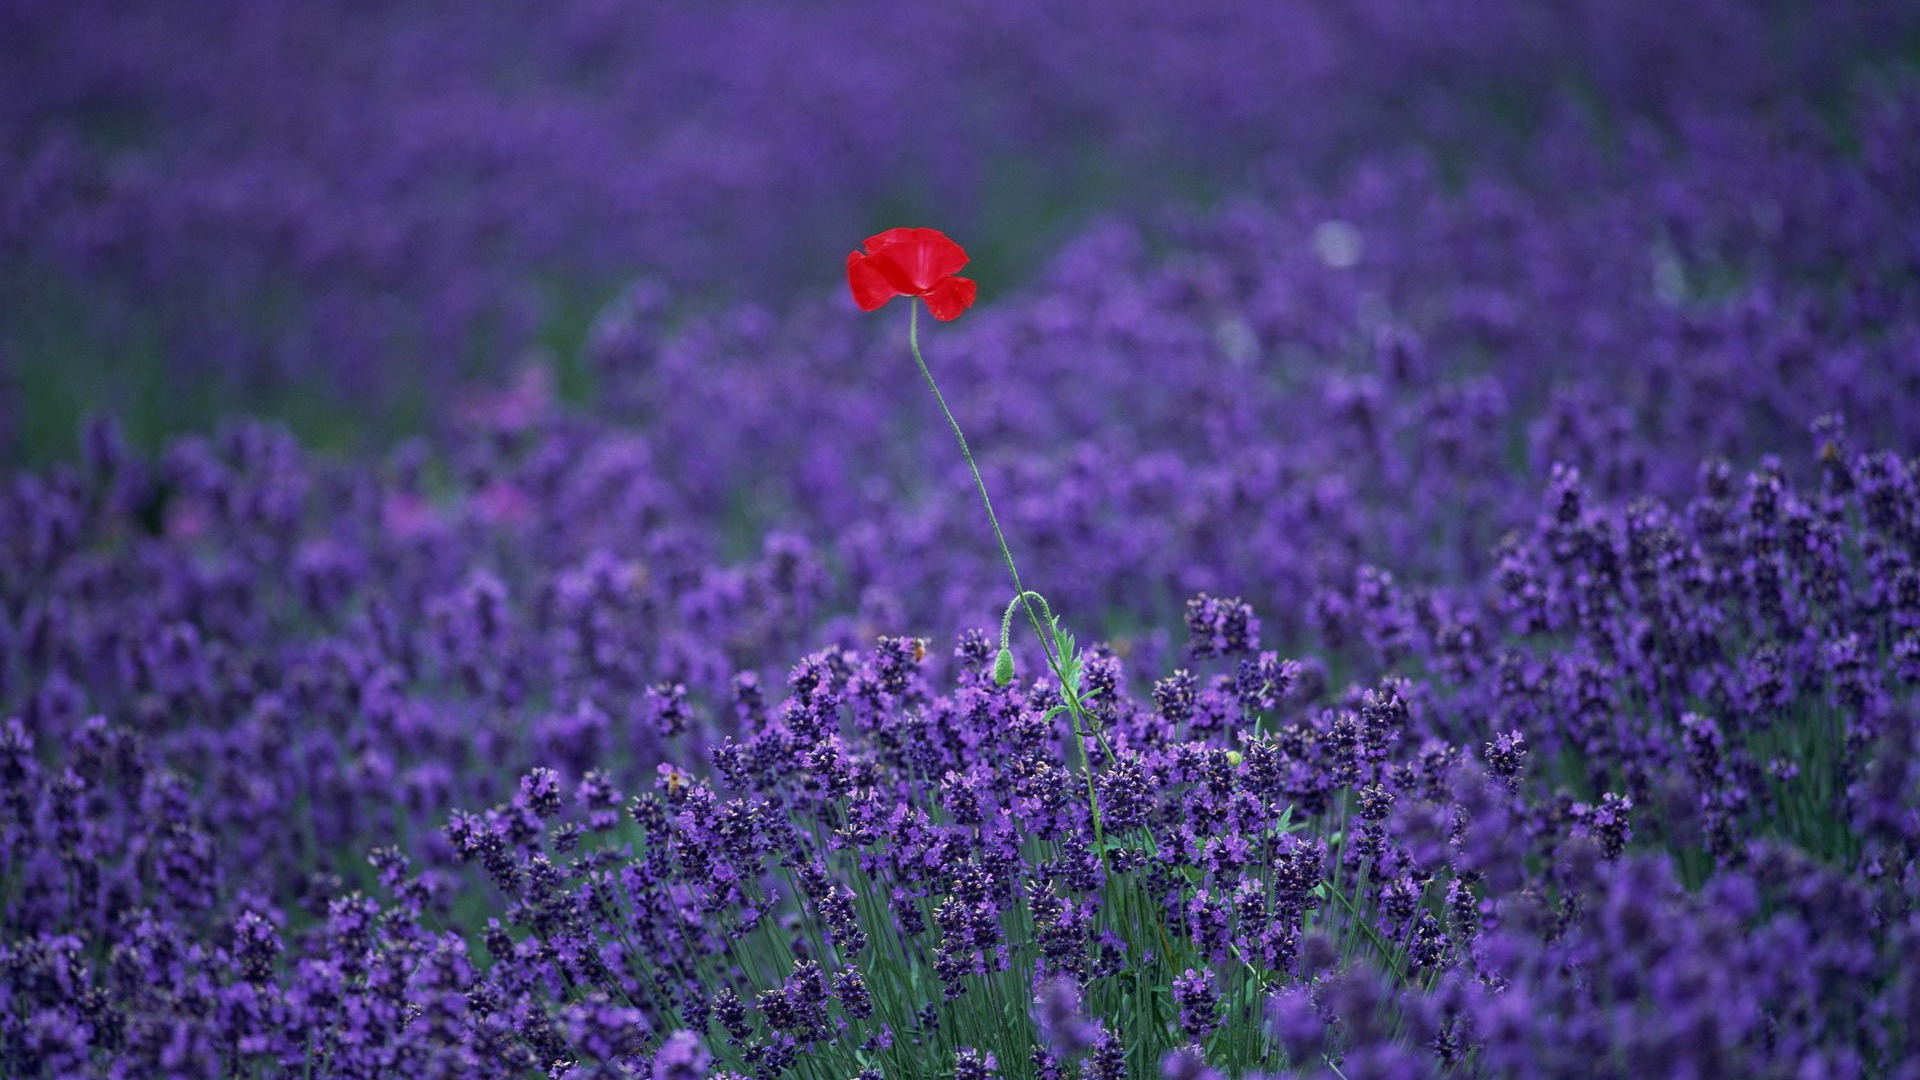 Lavender HD Wallpapers   Wallpaper High Definition High Quality 1920x1080